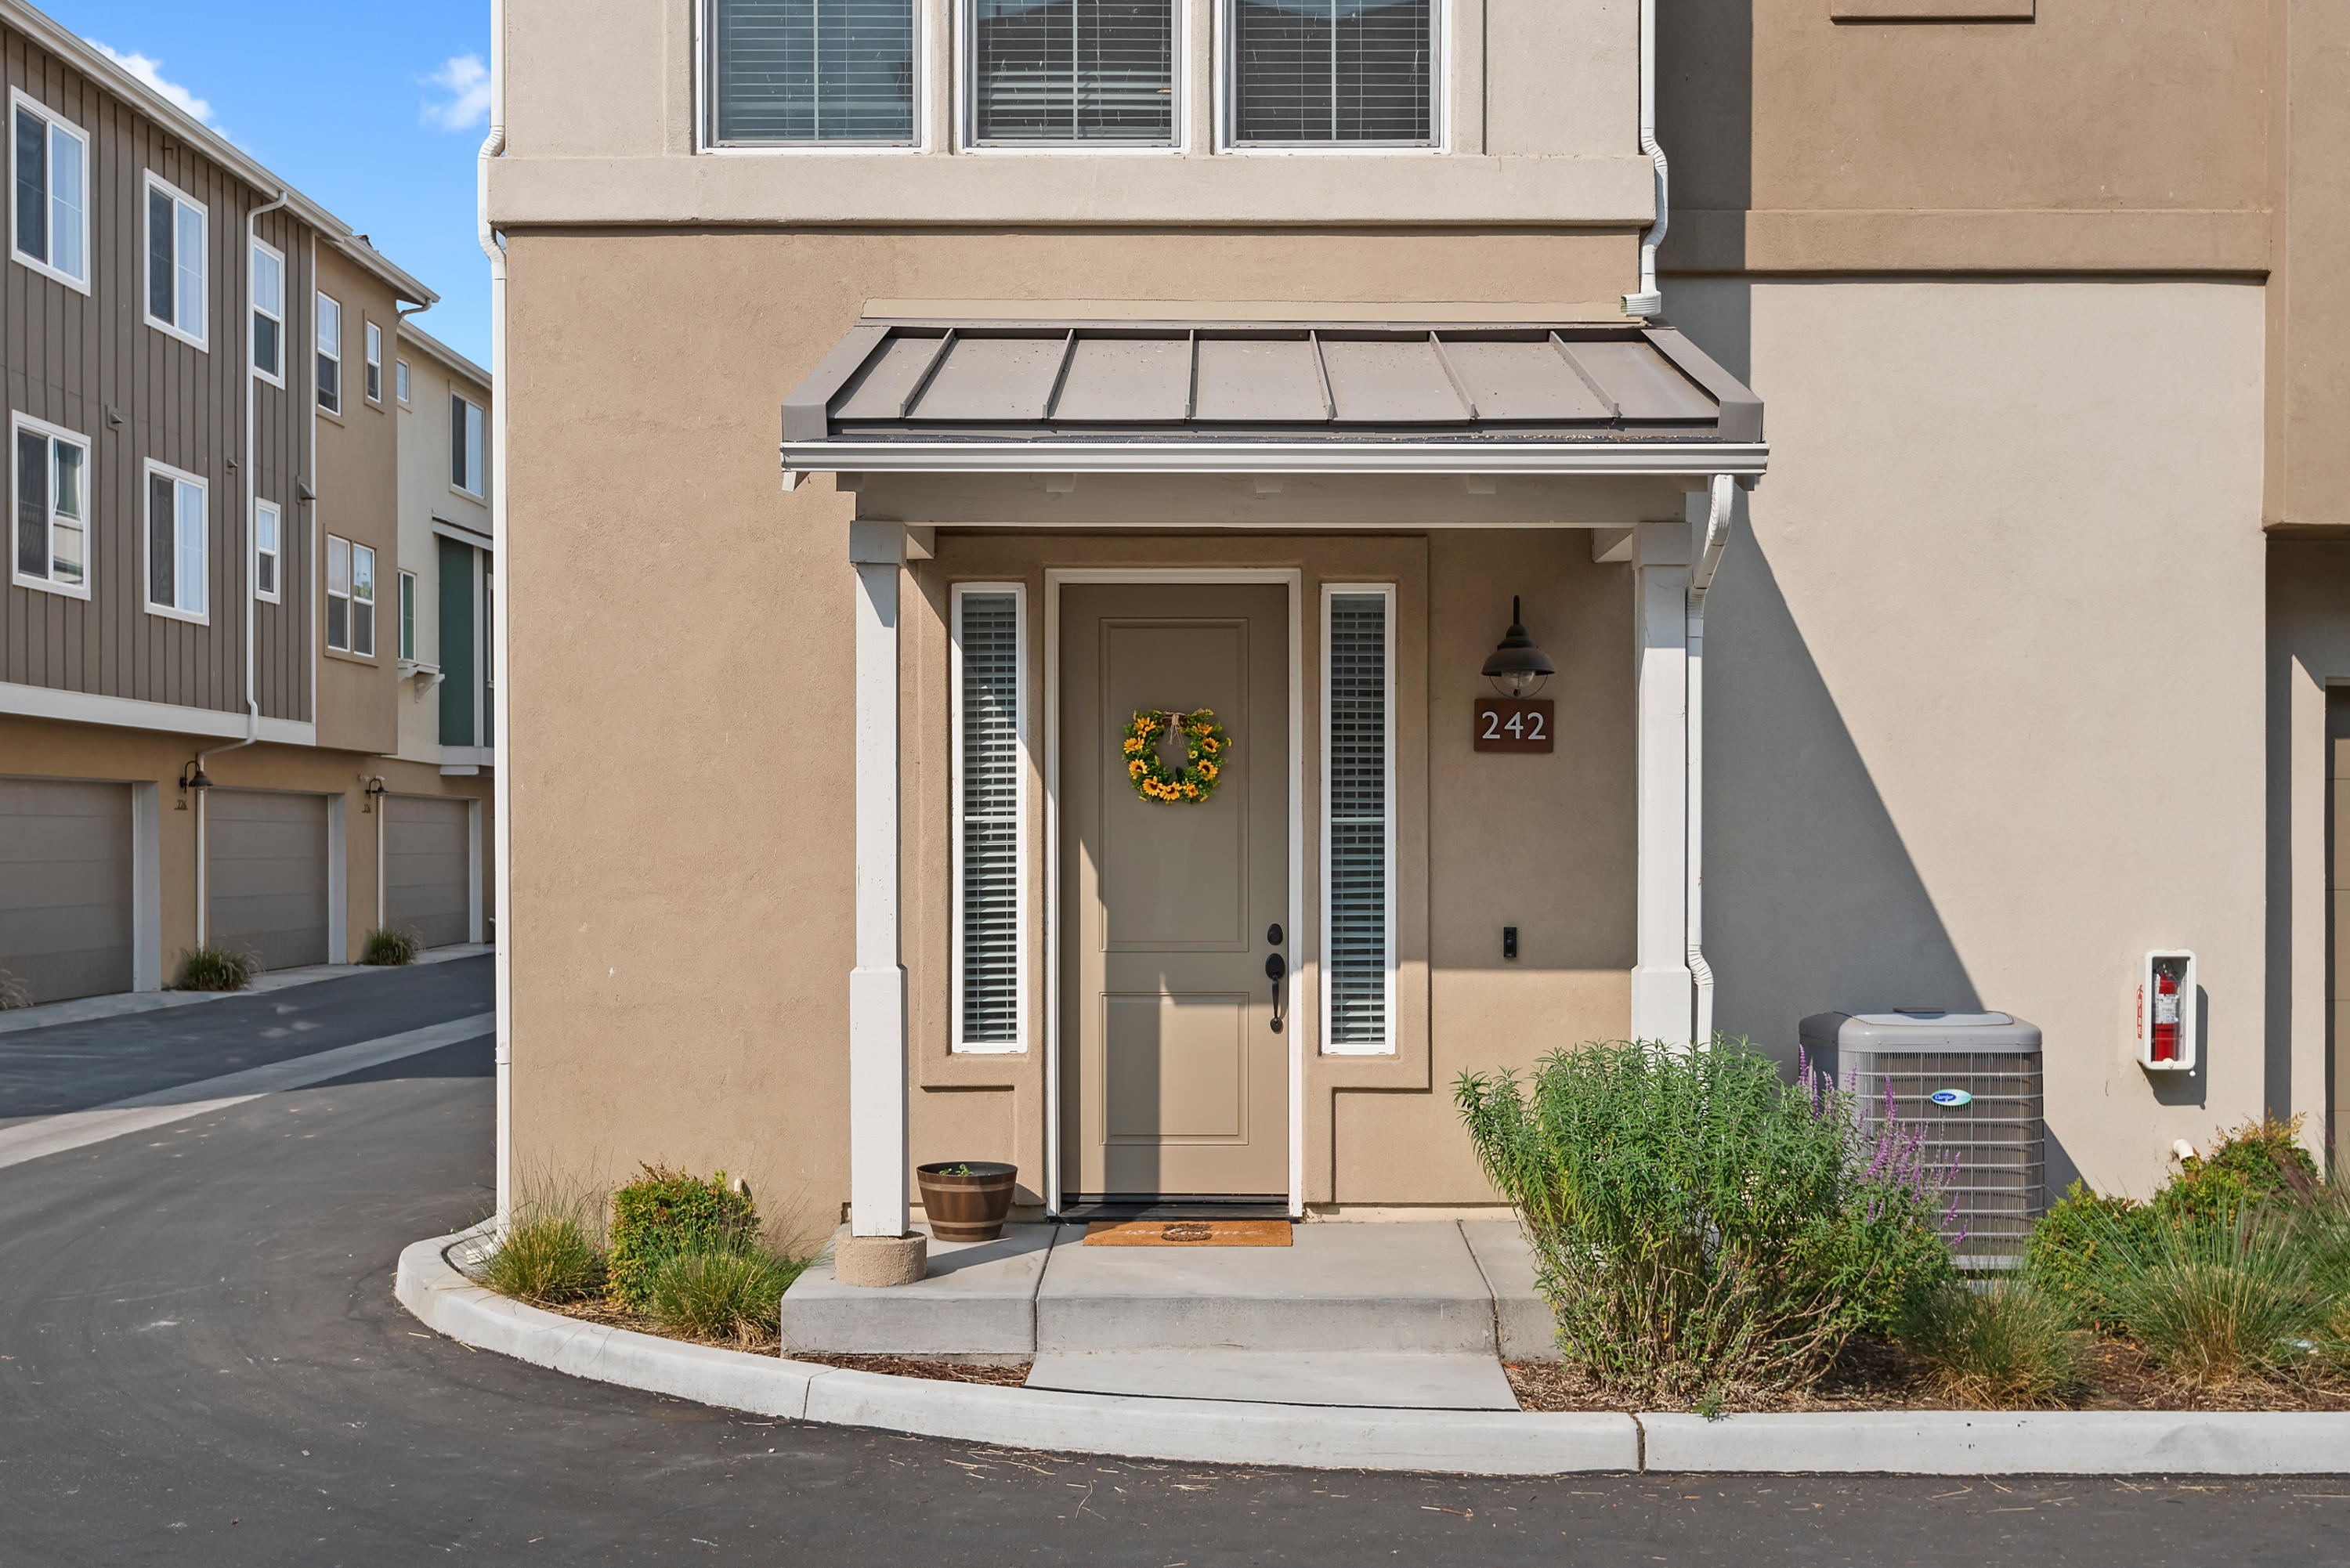 Move right in to this gorgeous Vineyard Village corner unit townhouse! Situated in the peaceful Santa Ynez Valley, Buellton offers small-town charm plus terrific value, just a short, picturesque drive to Goleta/Santa Barbara. Built in 2018, this bright & airy home feels like new construction, with an open floor plan and 9 ft ceilings throughout. The kitchen boasts quartz countertops, stainless steel appliances & 5-burner gas range. On the upper level there are 2 bedrooms, each with its own full bath. Attached 2 car garage, in-unit laundry, AC, & owned solar panels are just some of the many wonderful features of this home. Close to the 101, shopping, dining, parks & wineries- come see what makes Buellton such an appealing place to call home! Virtual tour & floor plan available 24/7.